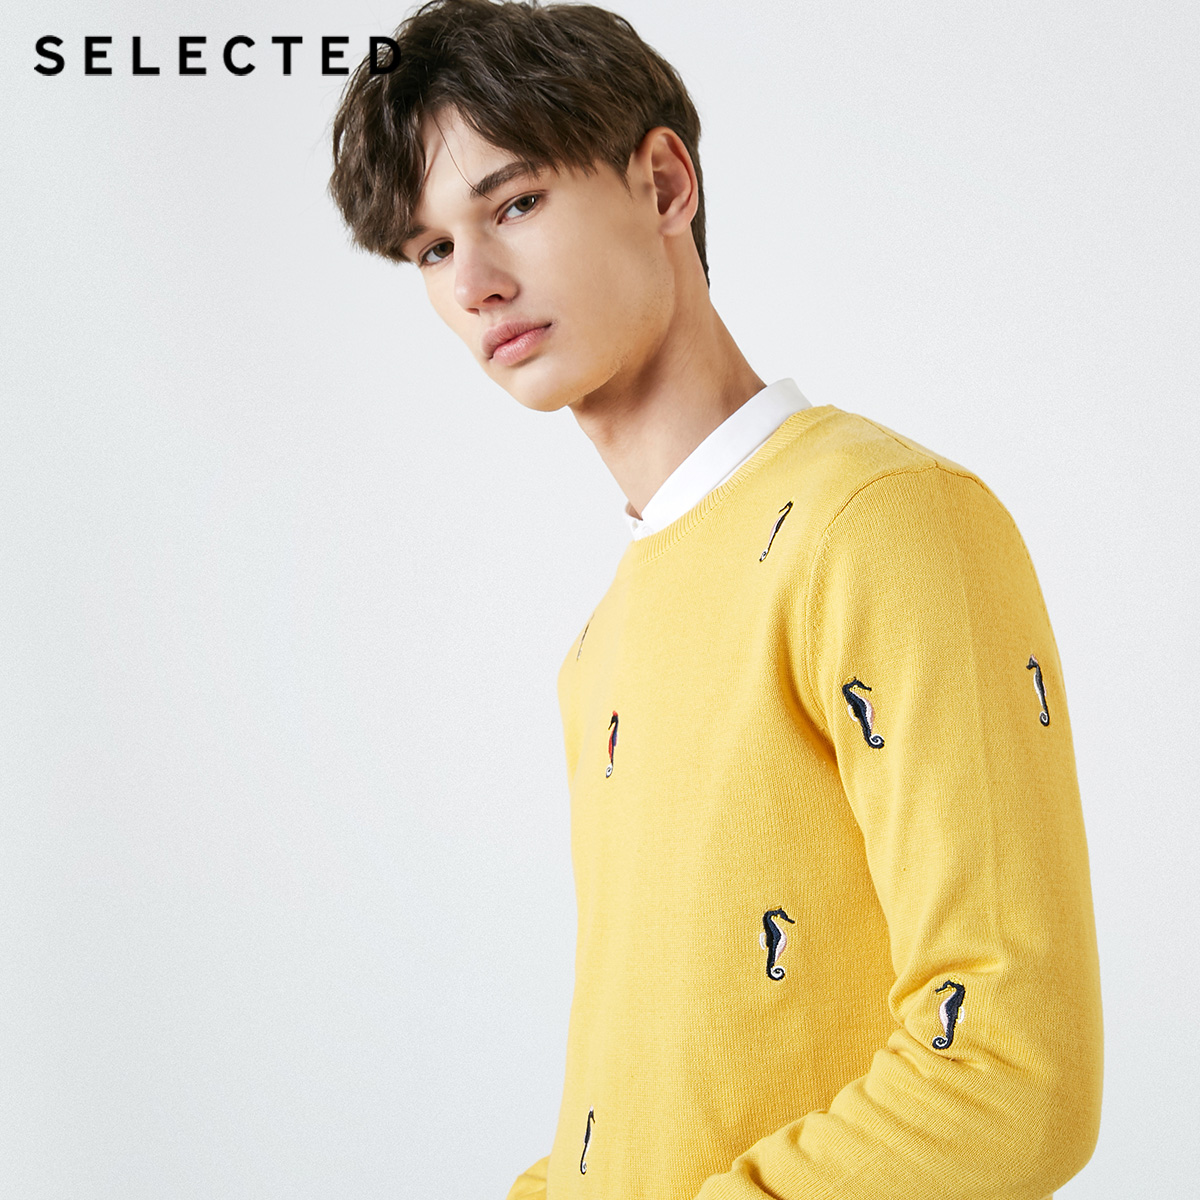 SELECTED Men's 100% Cotton Animal Embroidery Regular Fit Knitted Sweater C|419124541